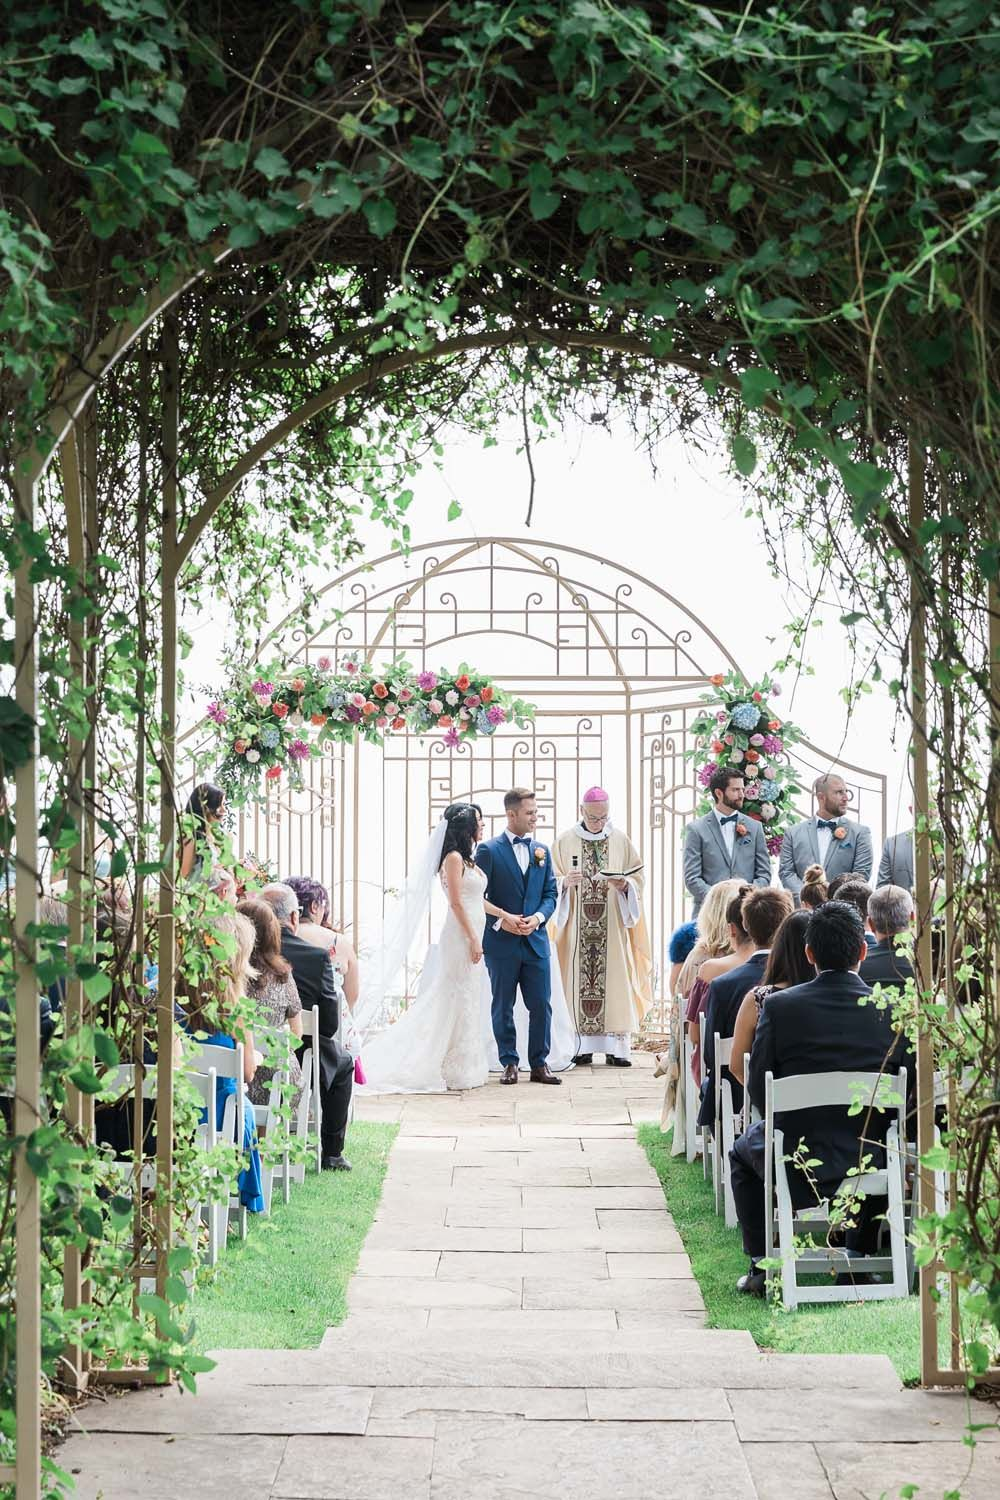 A Vibrant, Colourful FloralFilled Wedding in Toronto